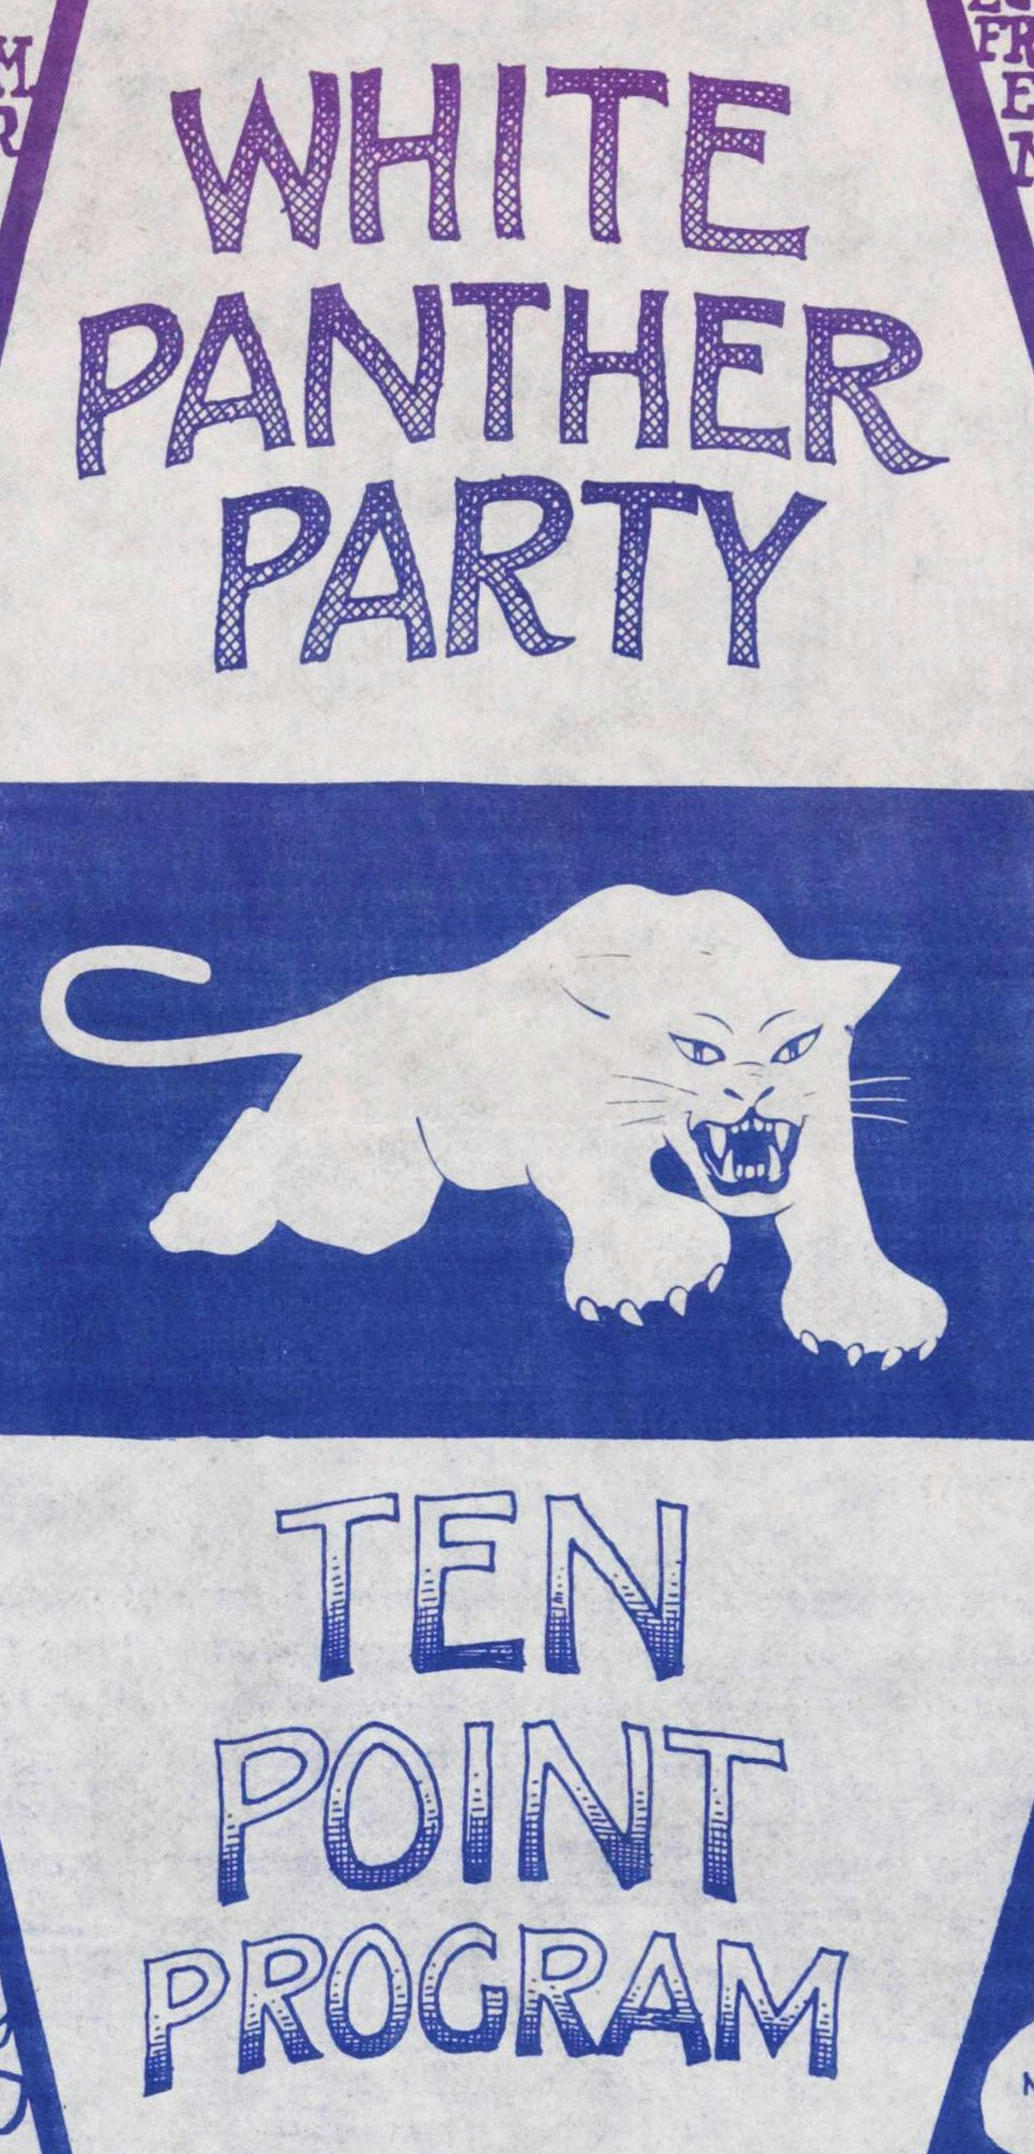 White Panther Party image